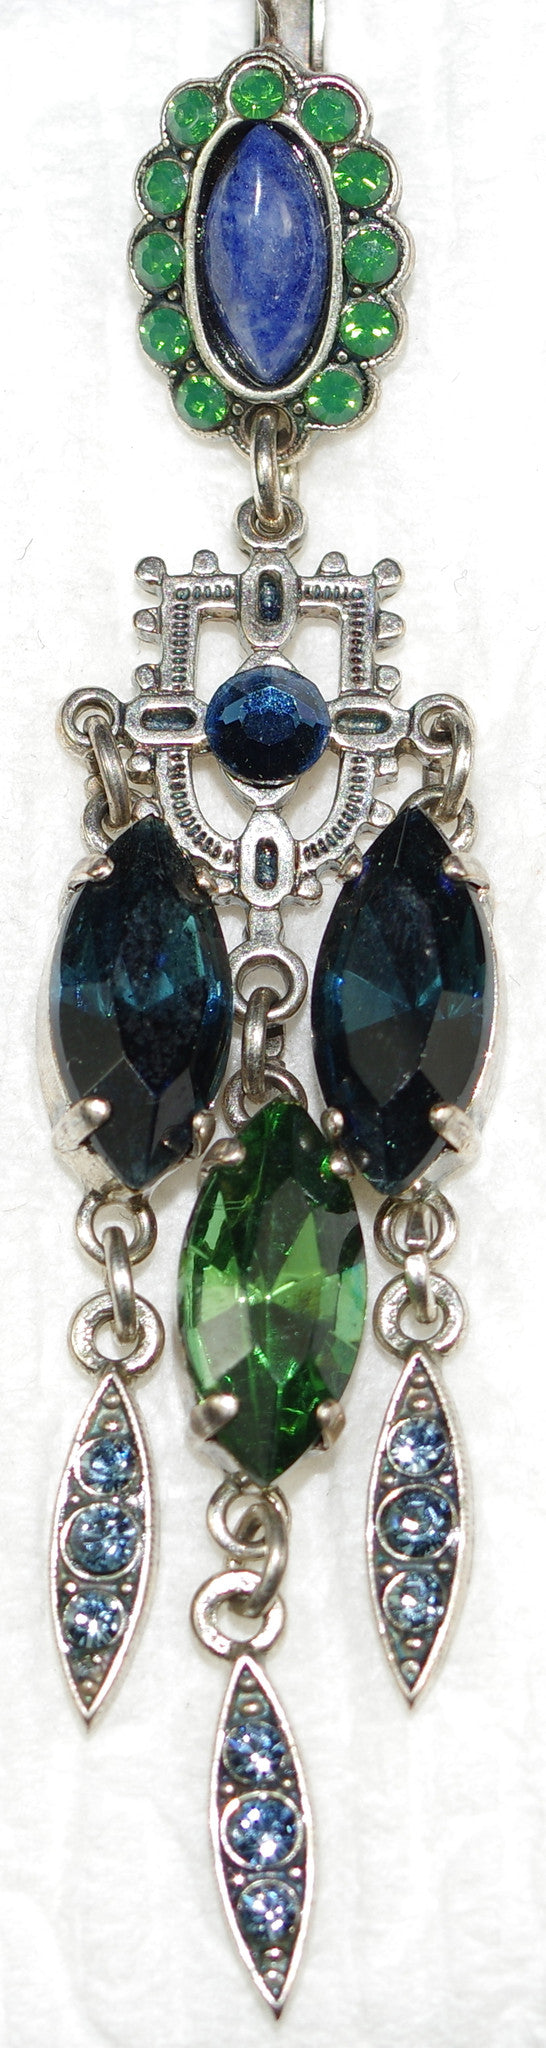 "MARIANA EARRINGS EMERALD CITY: blue, green stones in 3"" silver setting, lever back"